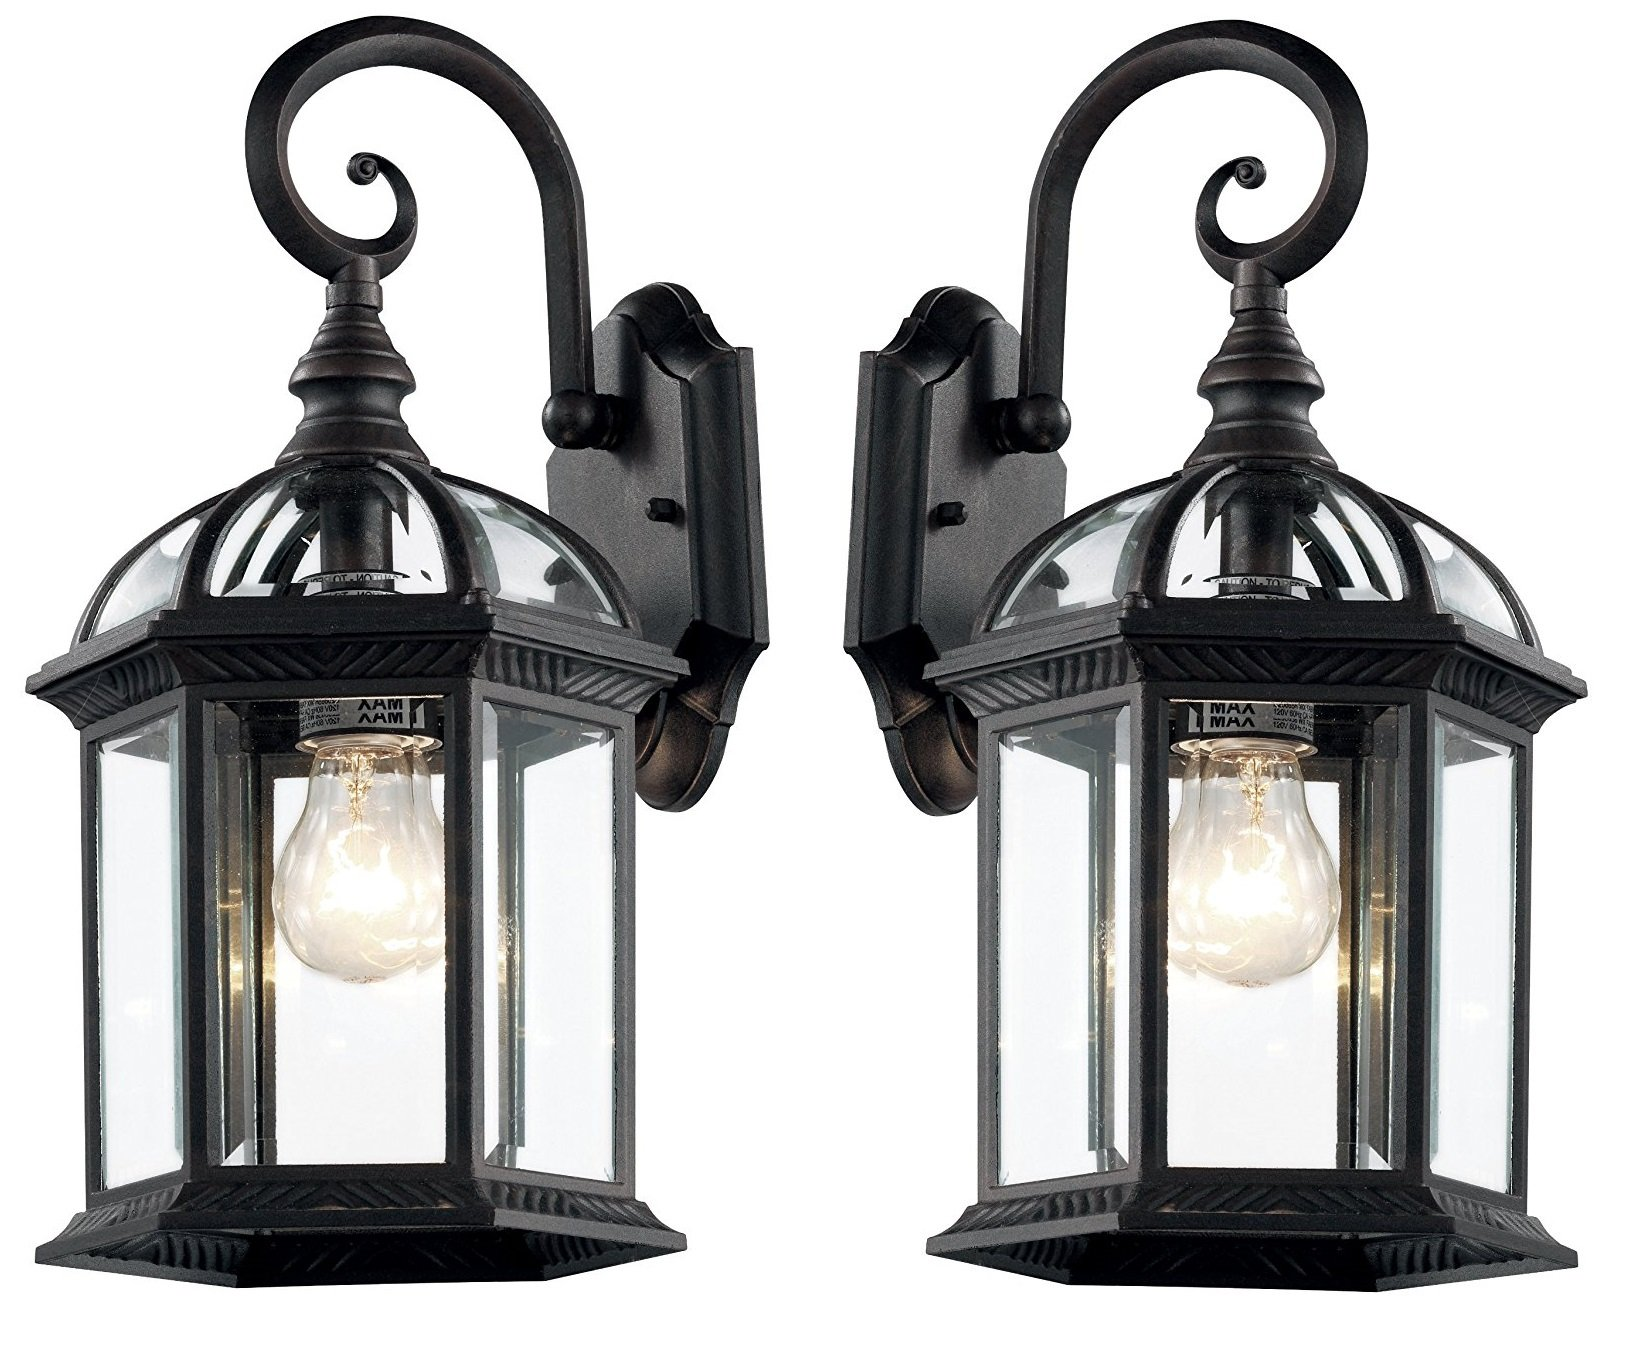 Trans Globe Lighting black-2pack 4181 BK Outdoor Wentworth 15.75'' Wall Lantern (Black-2 Pack) by Trans Globe Lighting